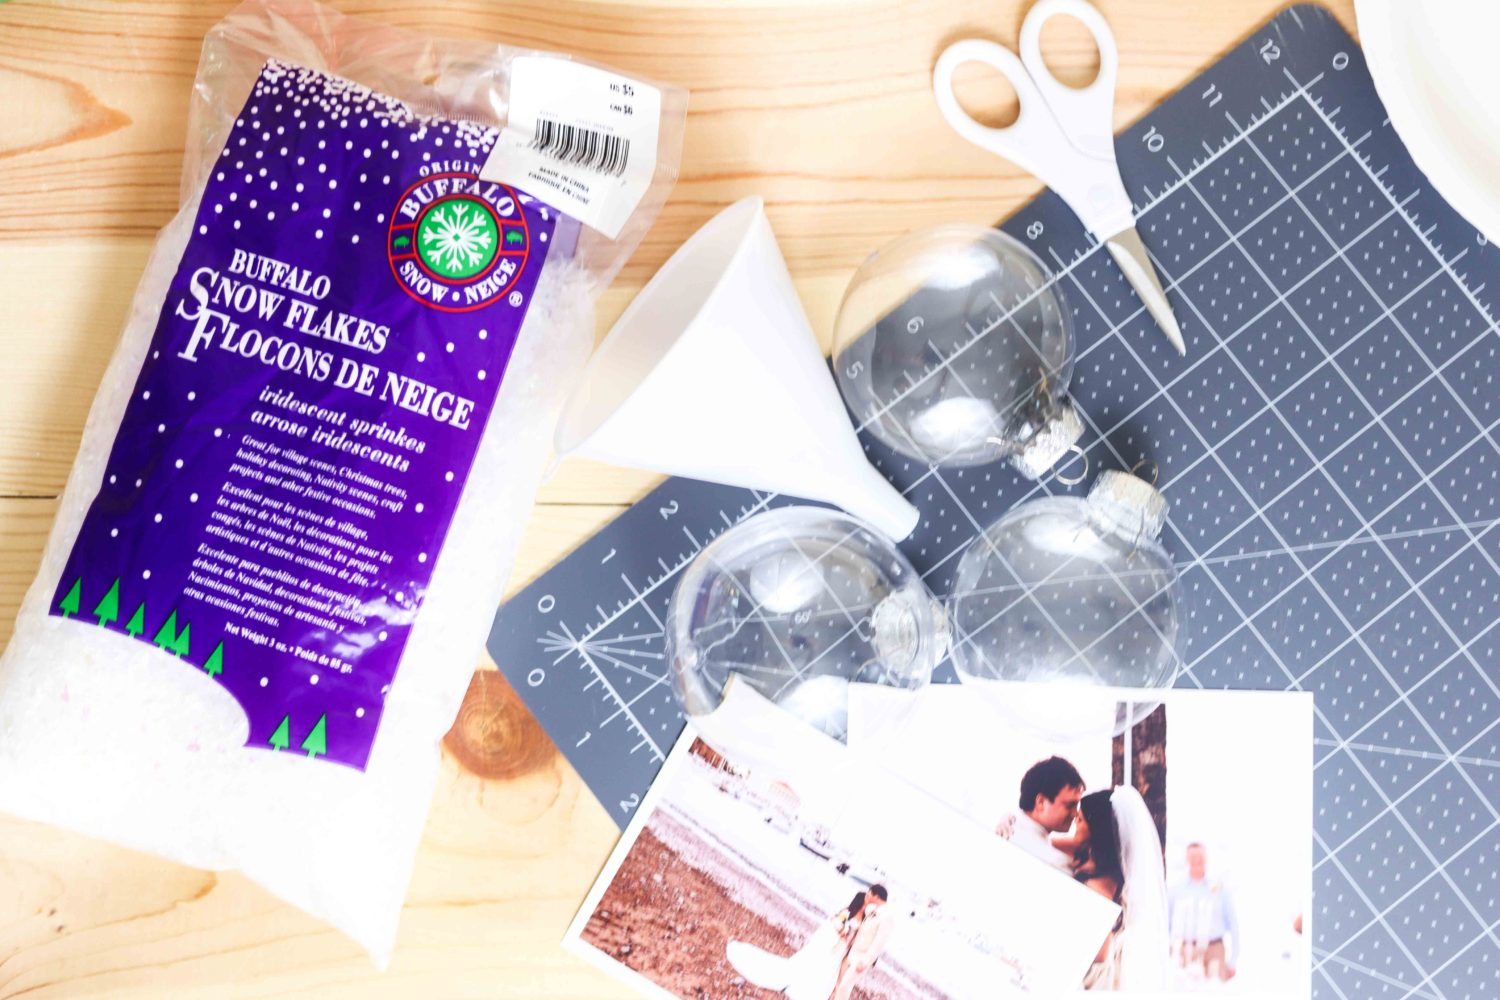 Materials needed to make Christmas ornaments with photos and Buffalo Snowflakes